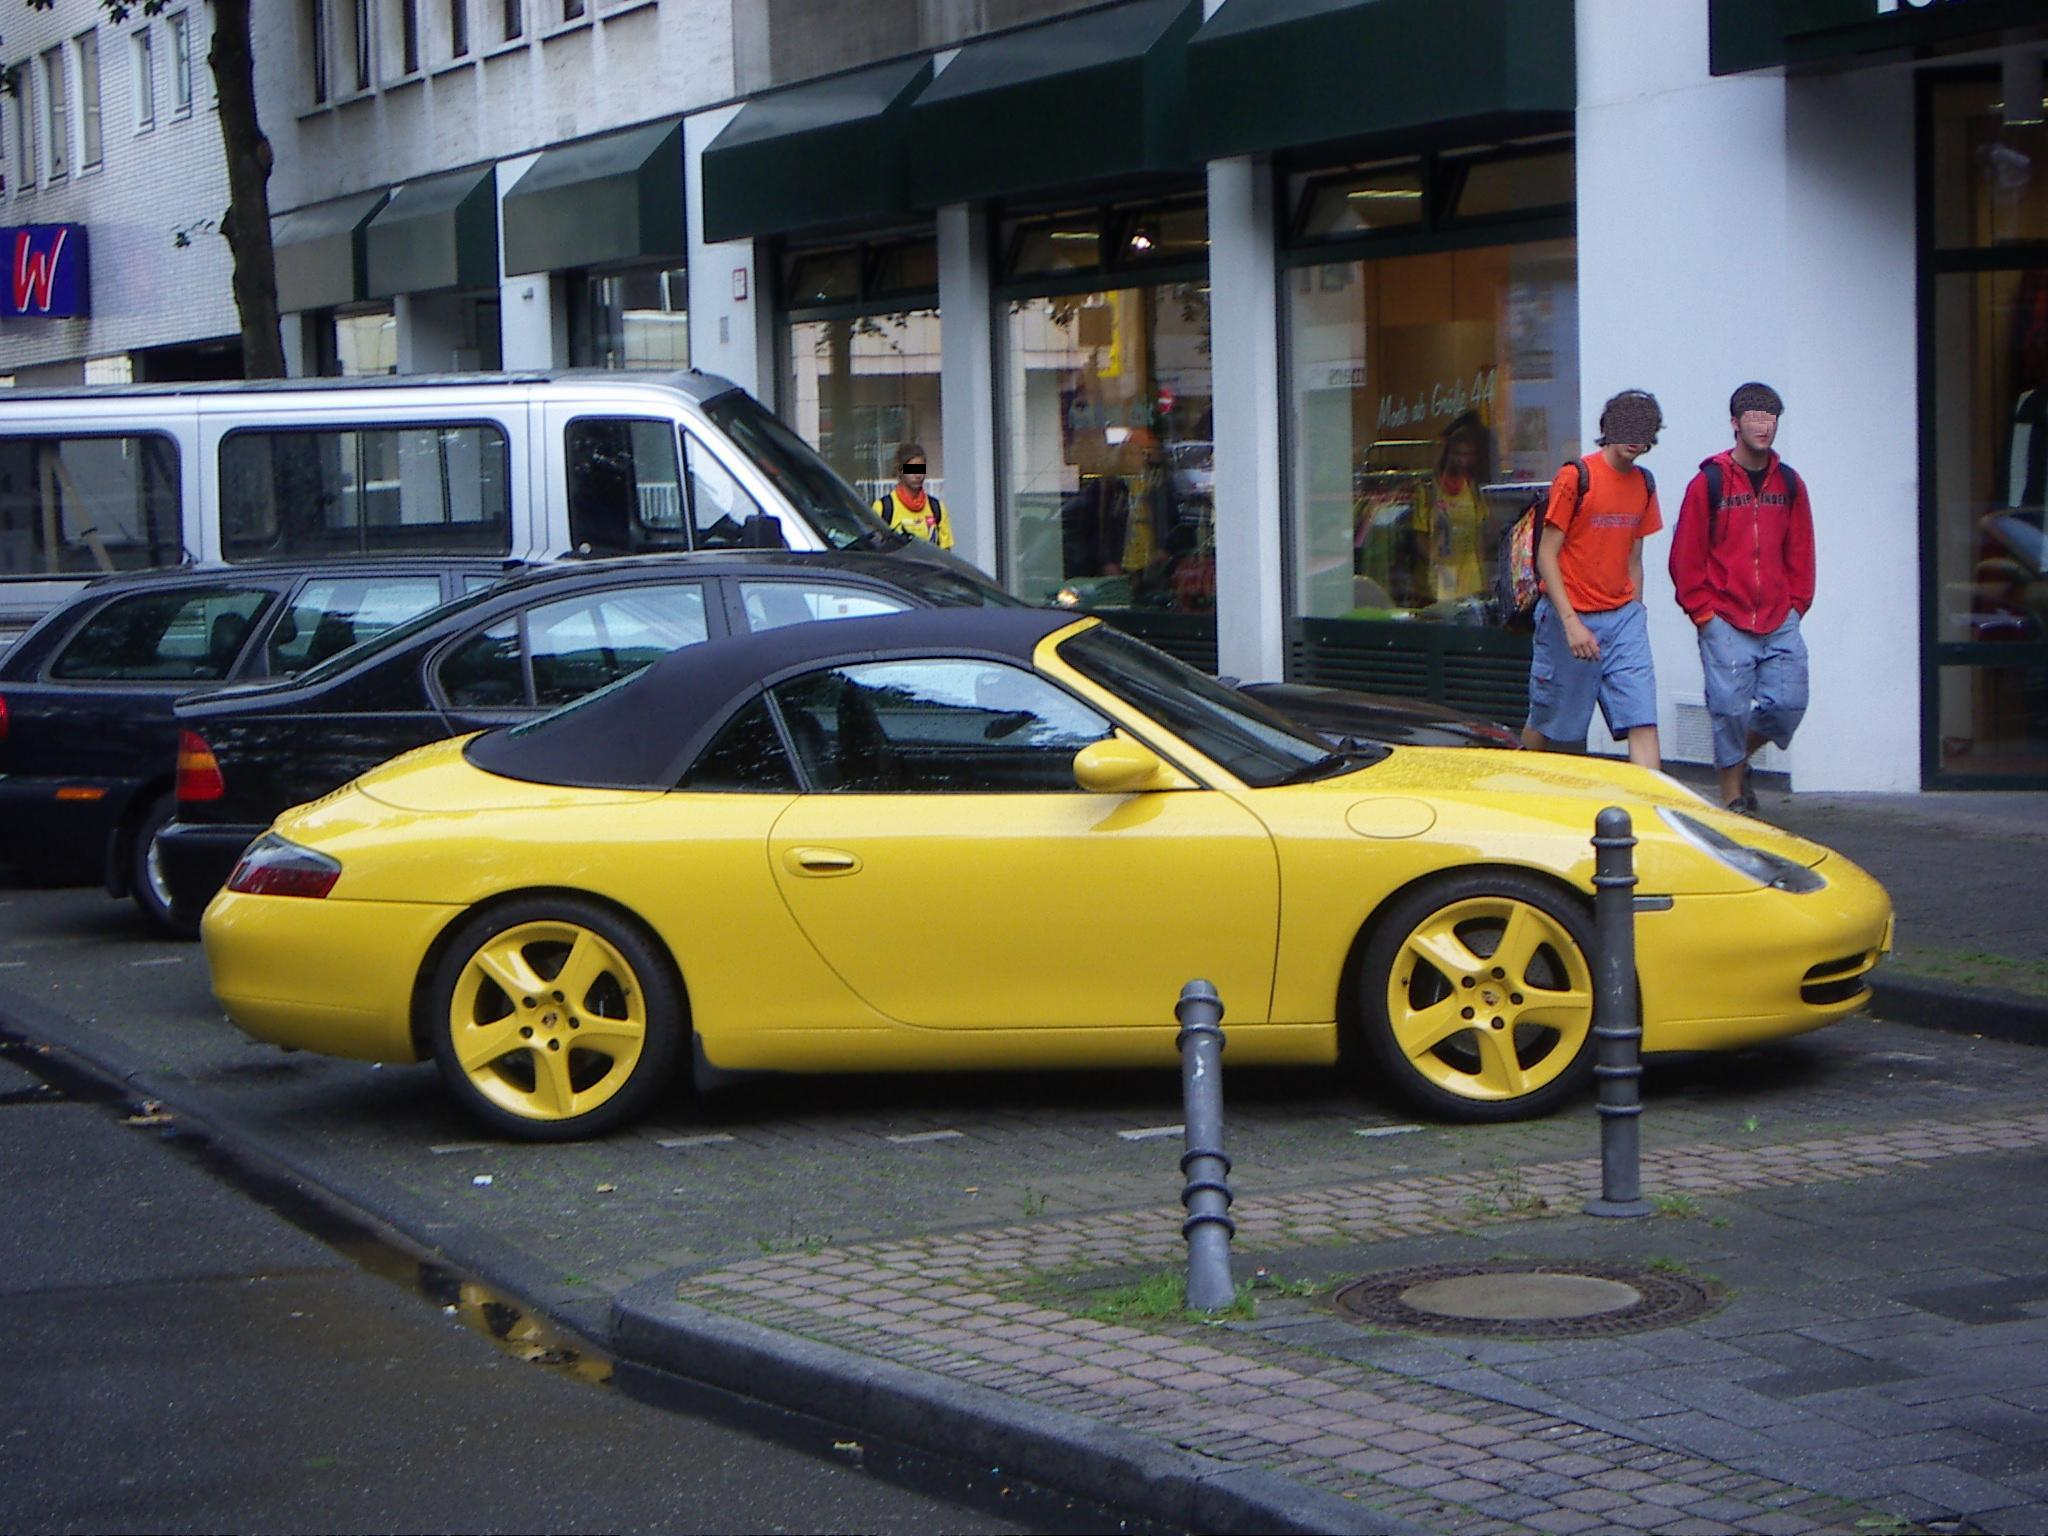 File:Yellow Porsche 911 Carrera Cabriolet Type 996.jpg